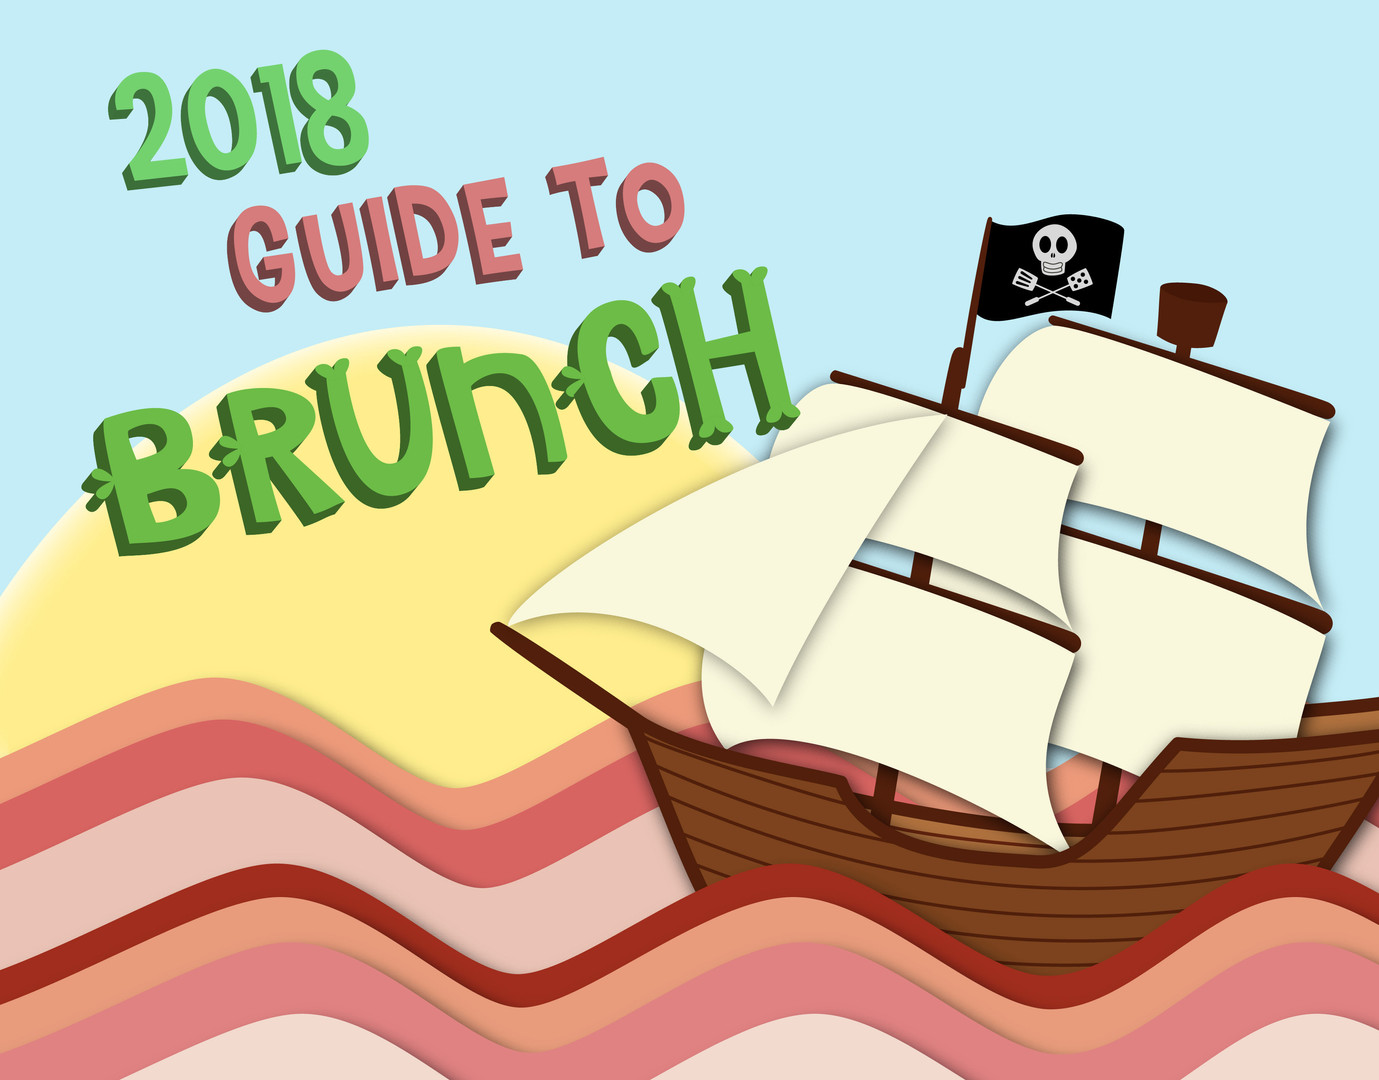 Guide to Brunch